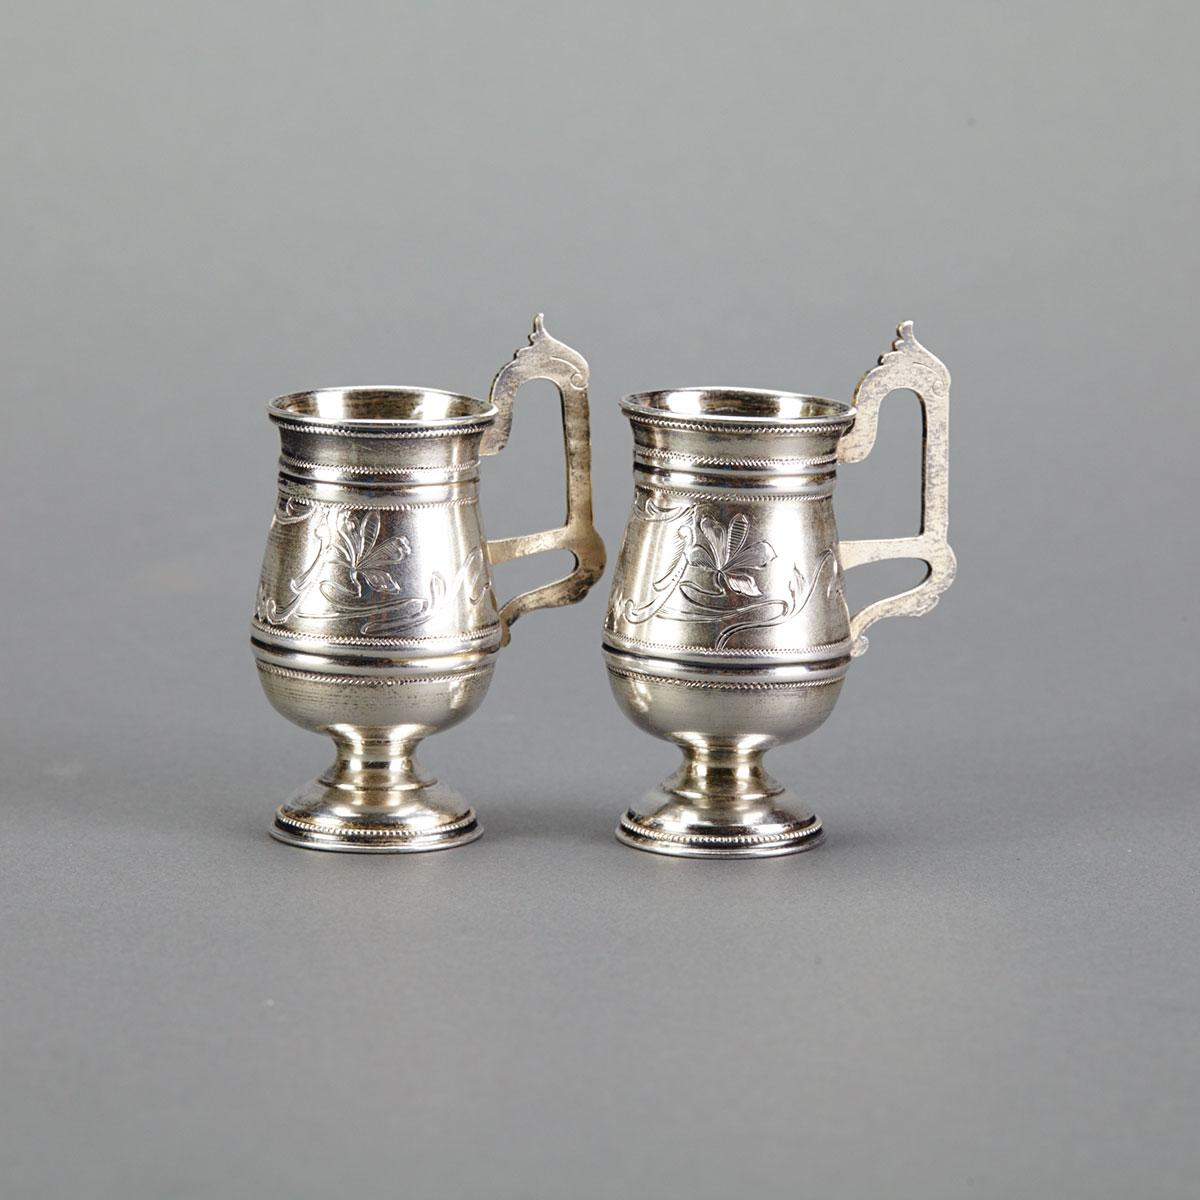 Pair of Russian Silver Charkas, Alexander Krivovichev, Moscow, 1899-1908